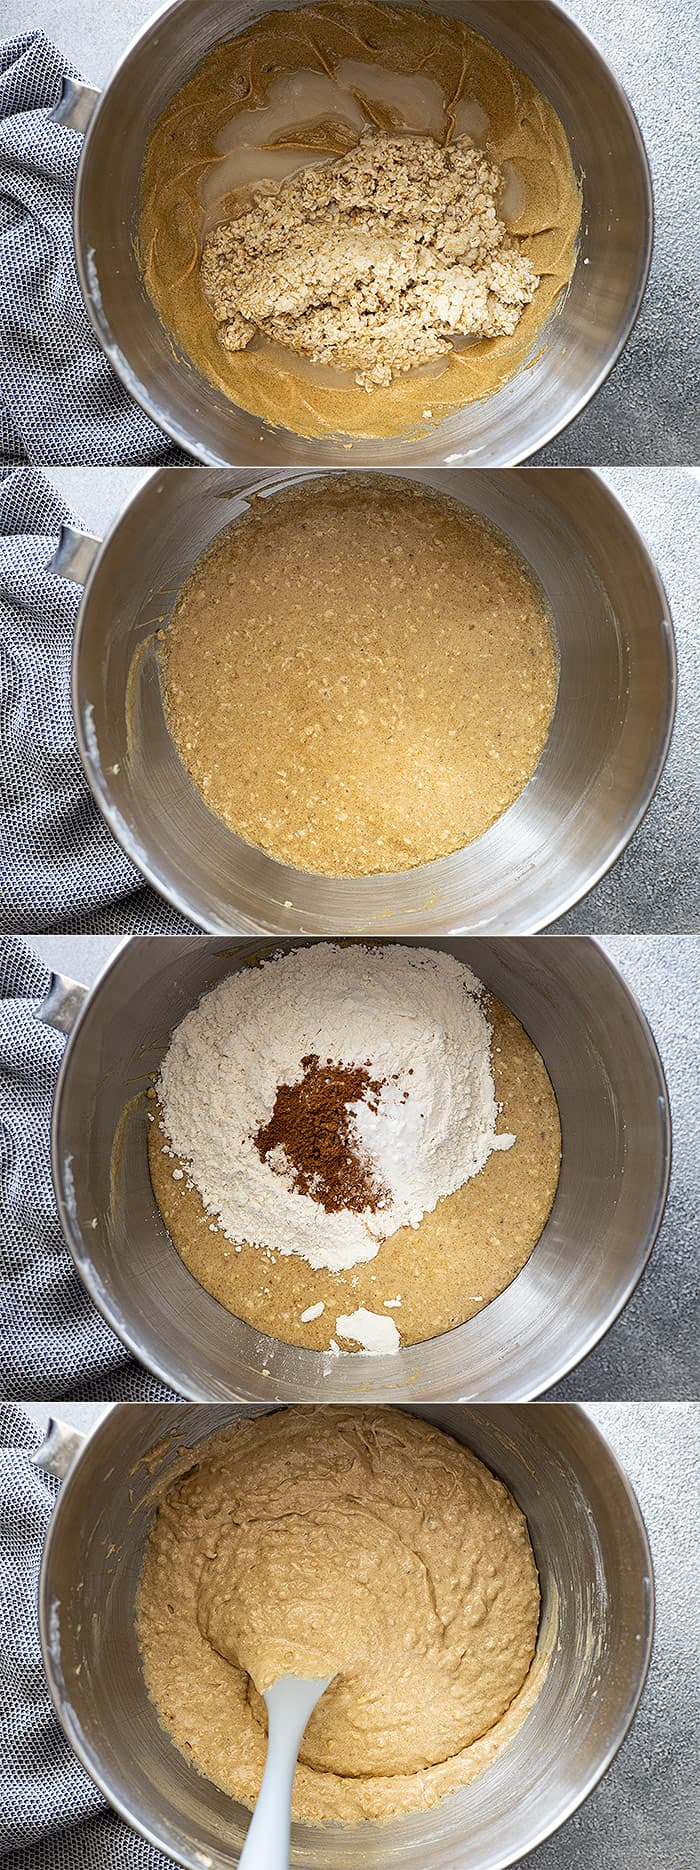 The finishing pictures on how to make the cake.